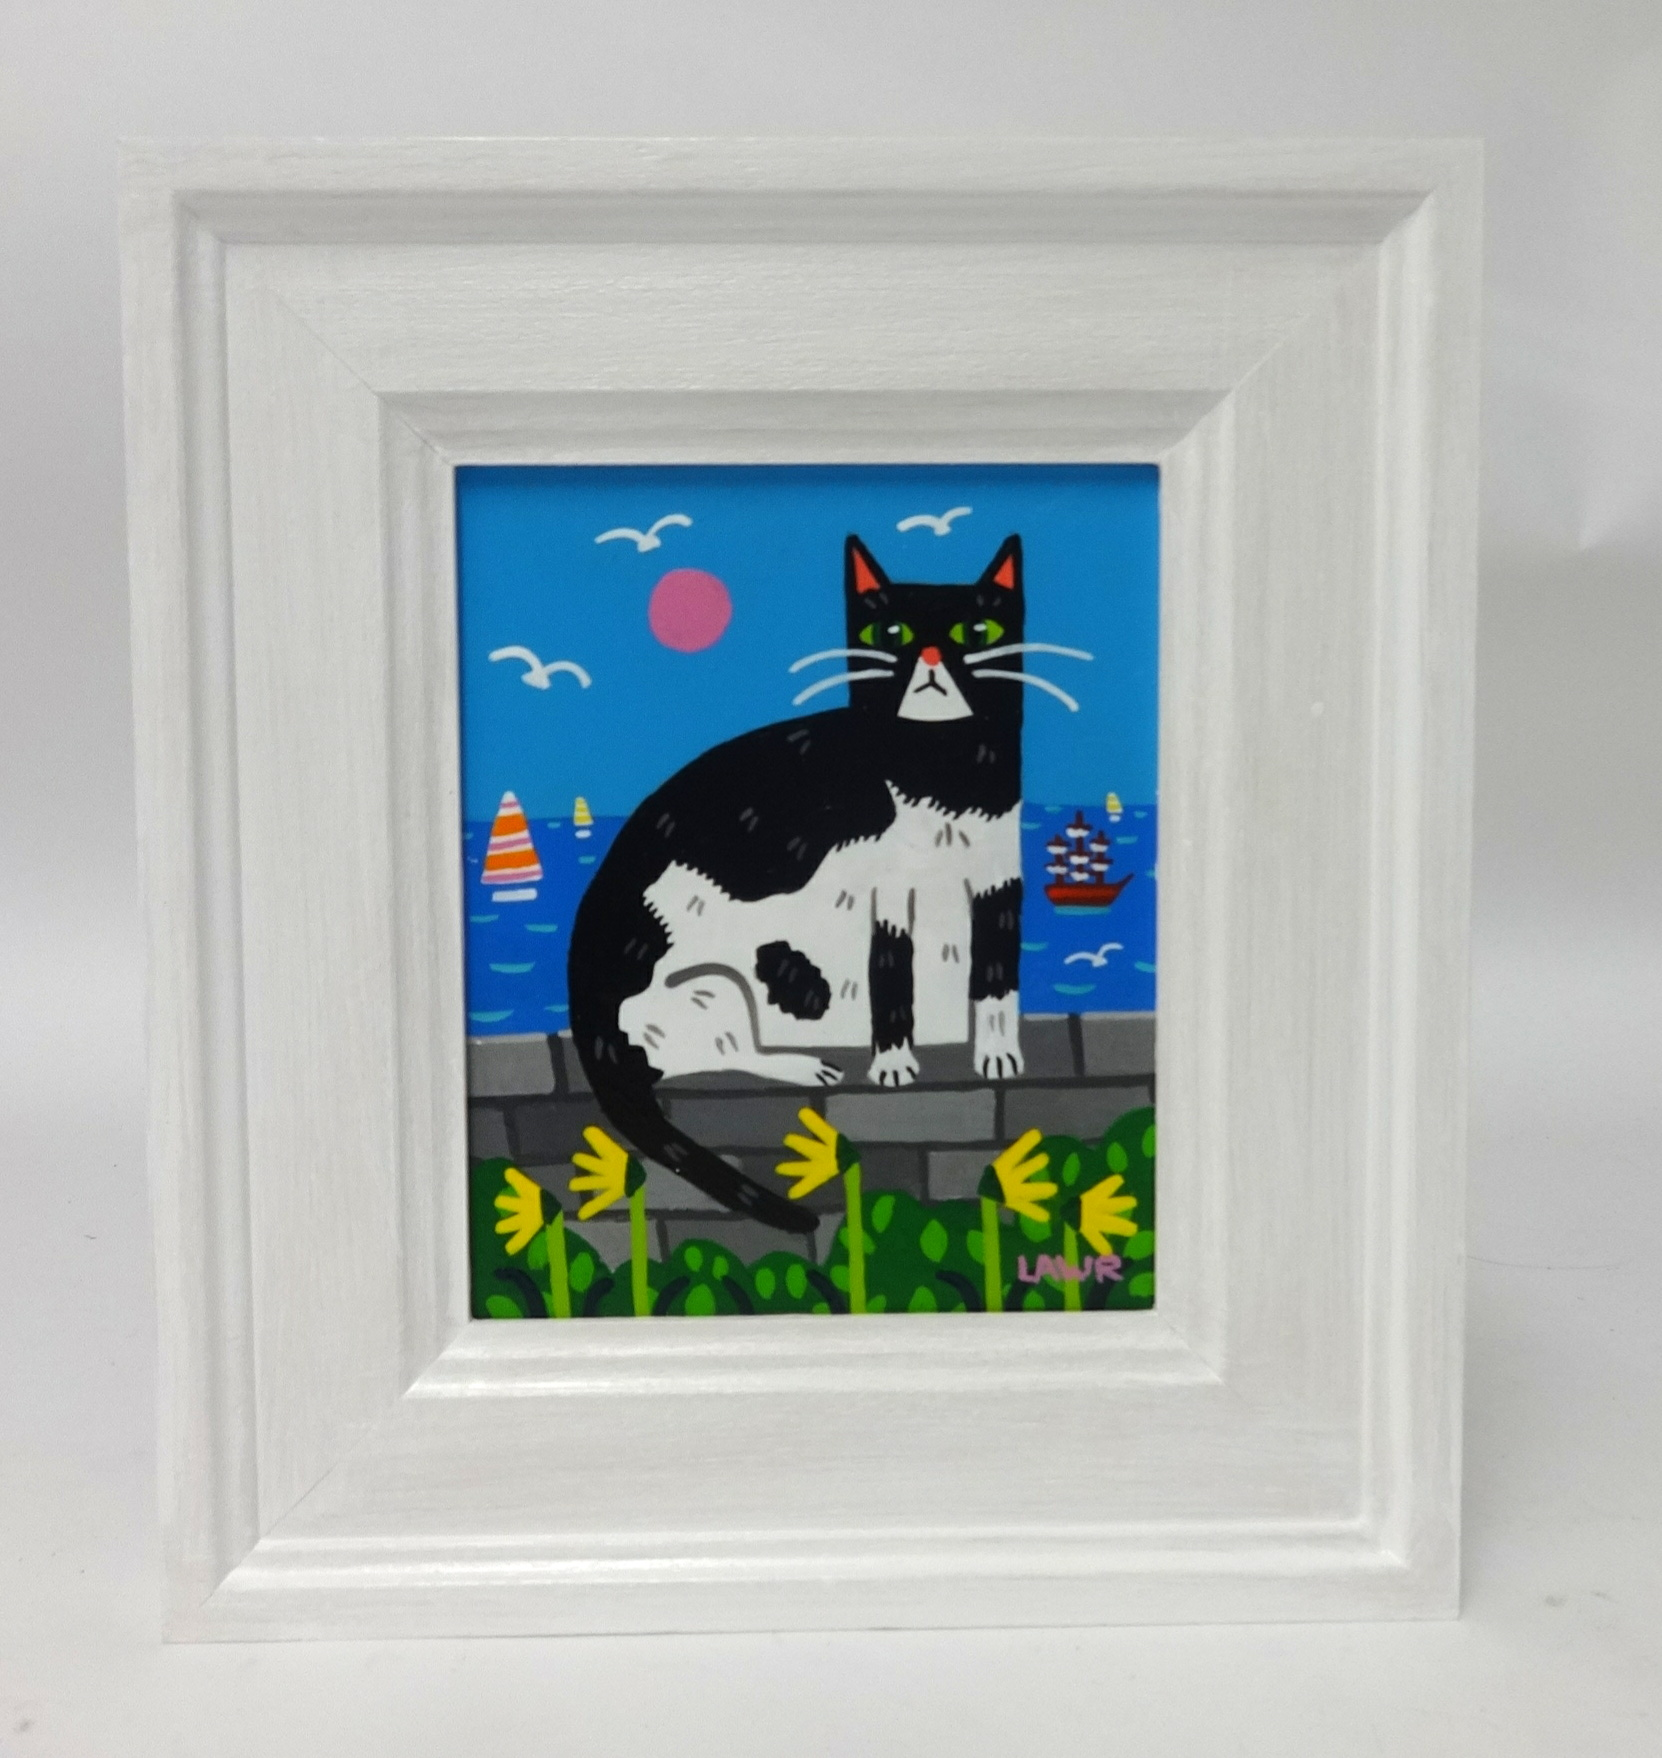 Lot 001 - Arth Lawr, 'A Cat on Hoe Road', signed and dated 2018, original acrylic on board, 15cm x 12cm,